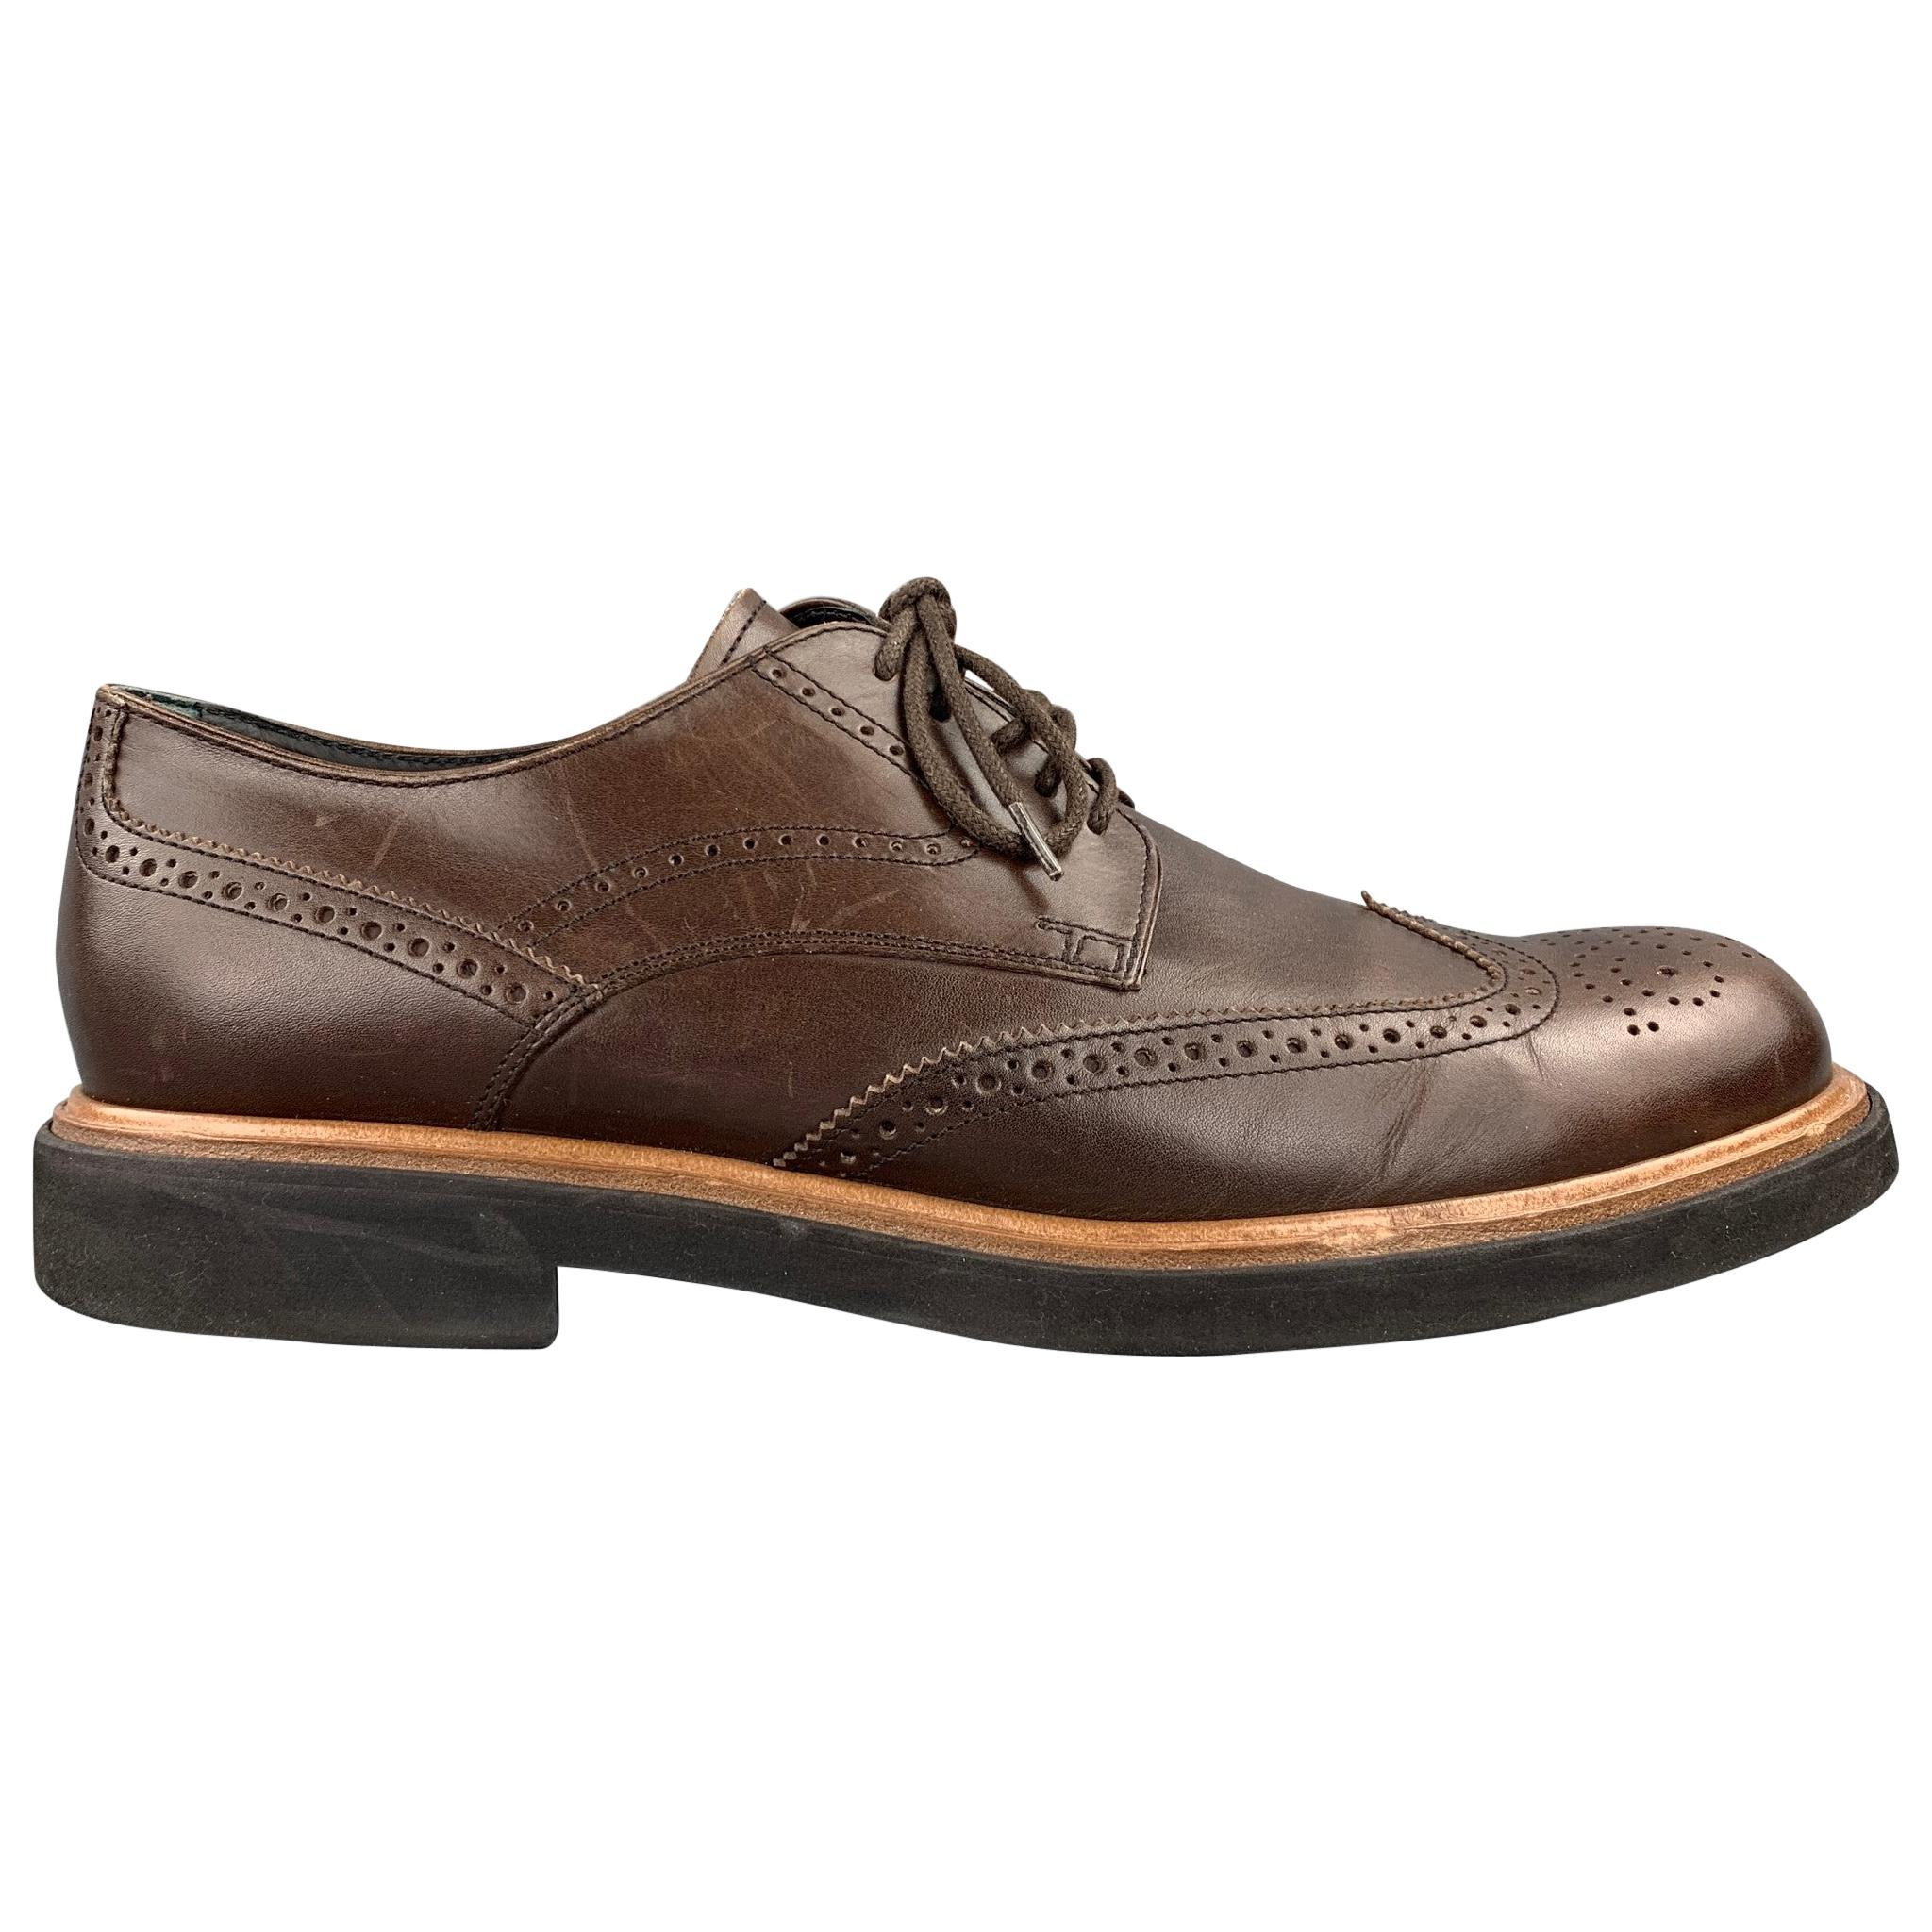 TOD'S Size 10.5 Brown Perforated Wingtip Leather Lace Up Shoes